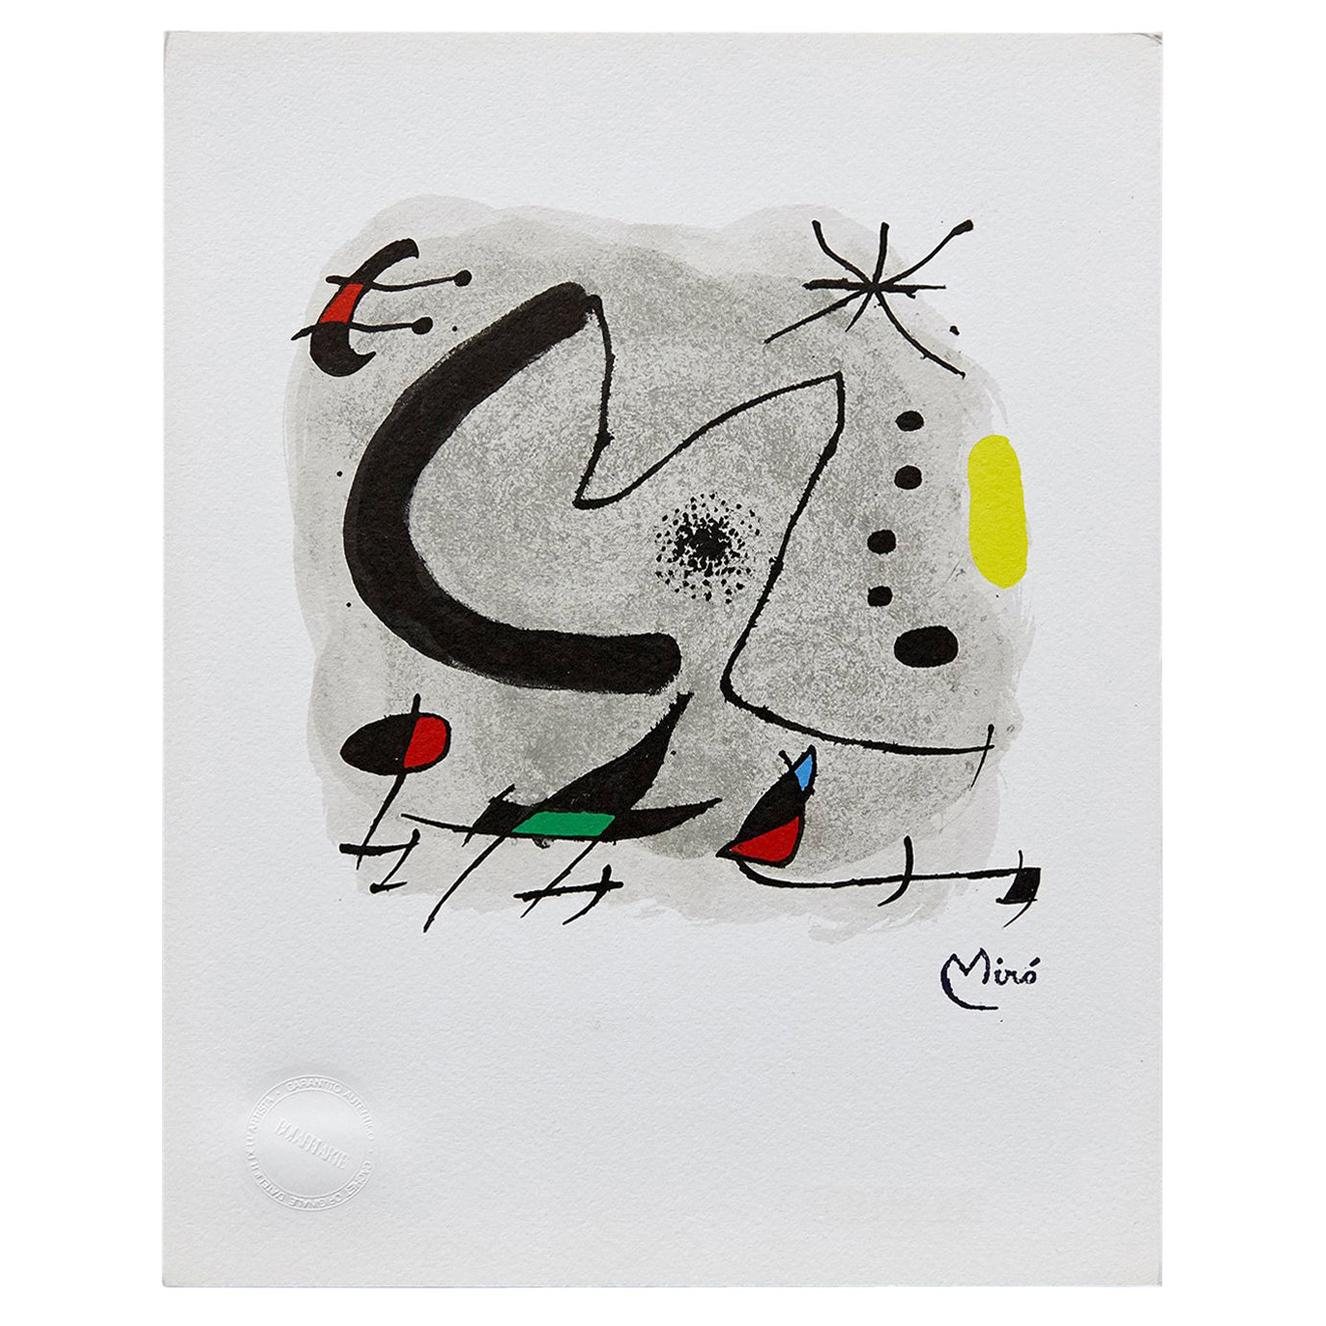 Joan Miro, Abstract, Black Red Green Yellow Photolithography